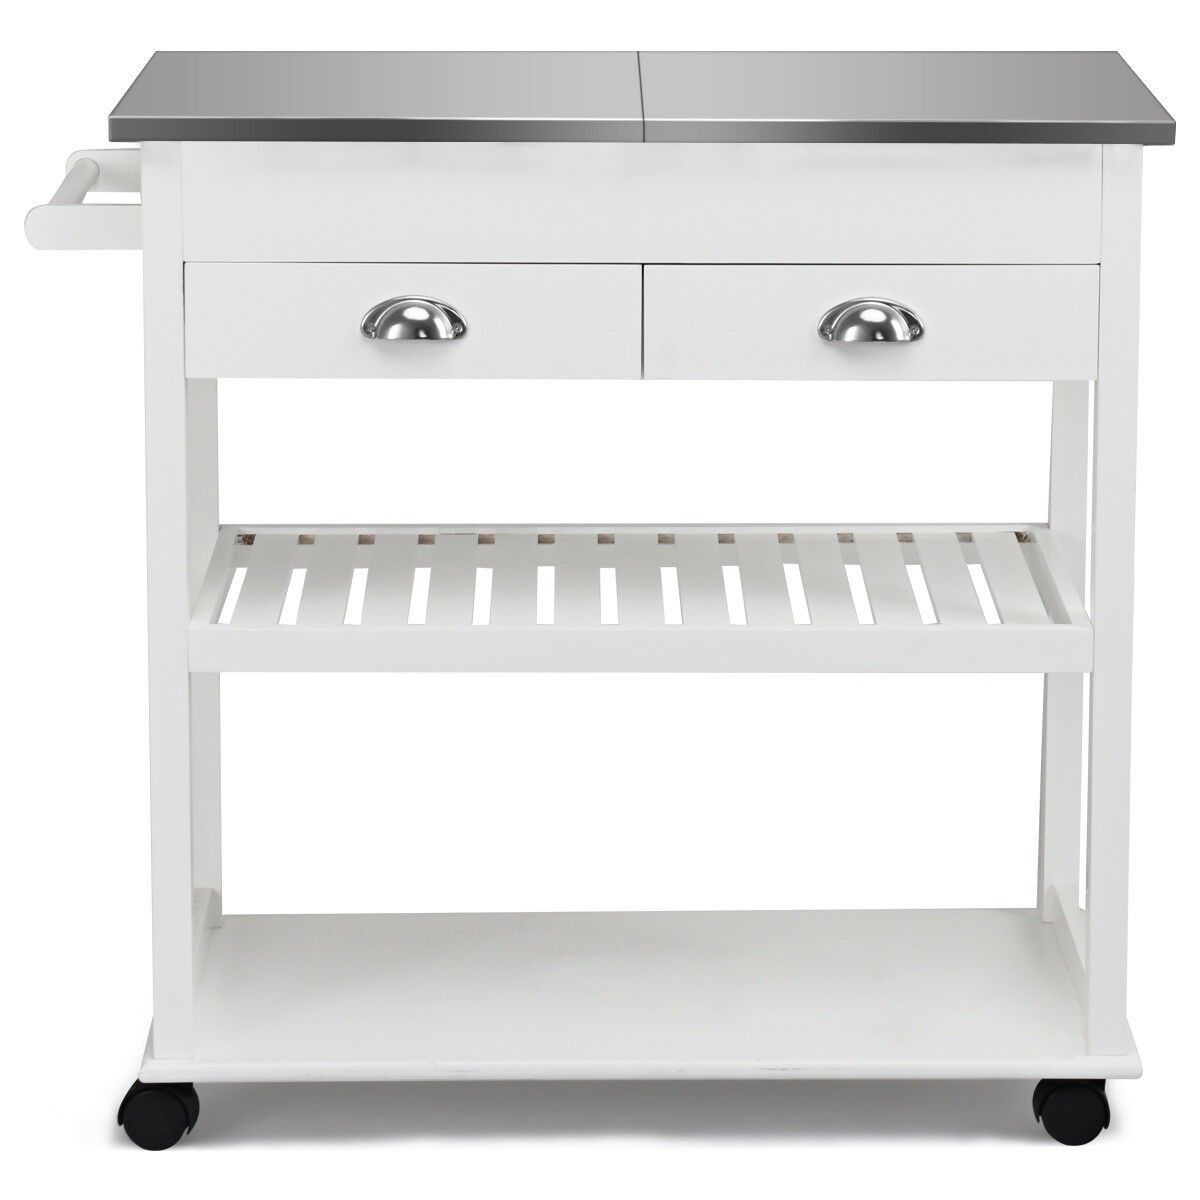 Stainless Steel Mobile Kitchen Trolley Cart With Drawers Casters Material Stainless Top Mdf Frame Kitchen Roll Rolling Kitchen Cart Rolling Kitchen Island